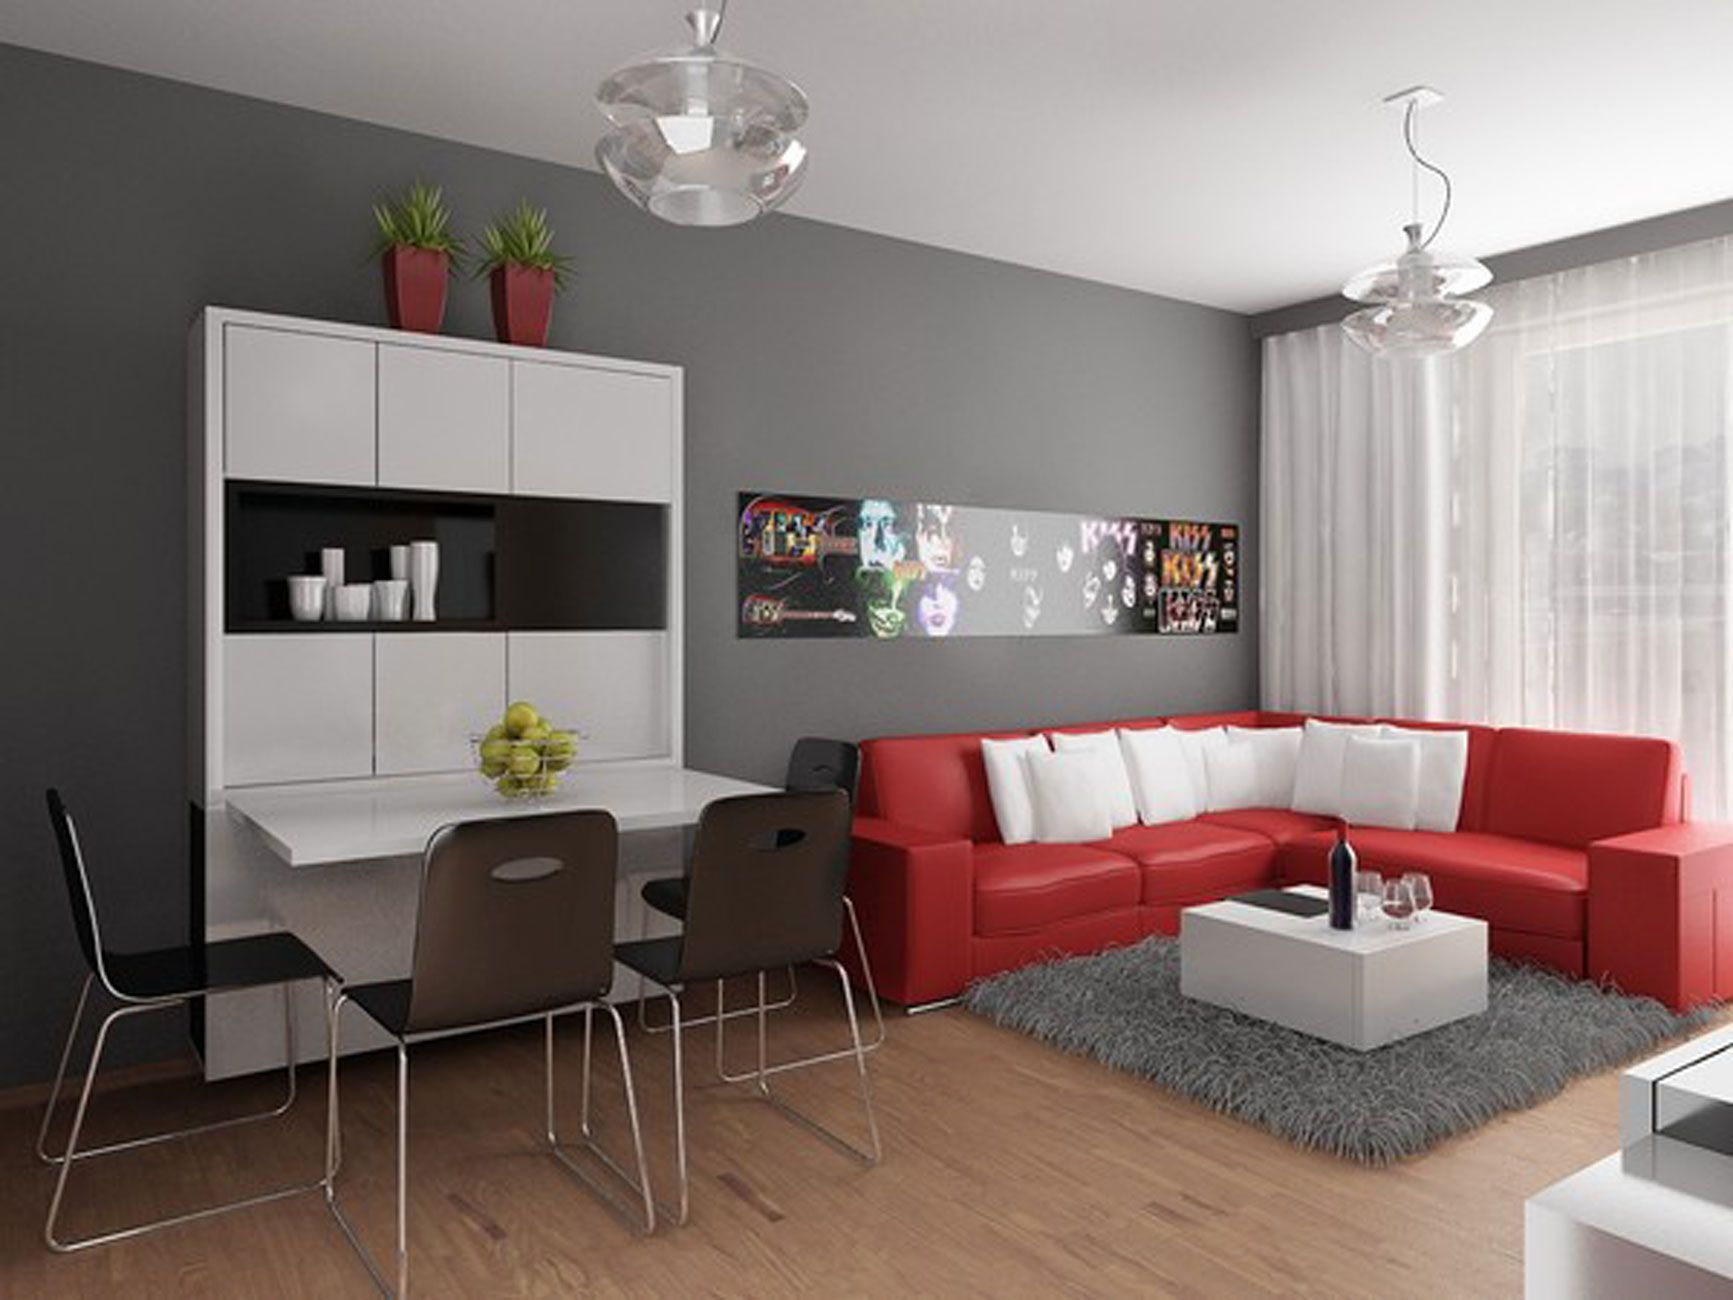 Life Storage Blog Small Apartment Interior Small Apartment Design Interior Design Apartment Small